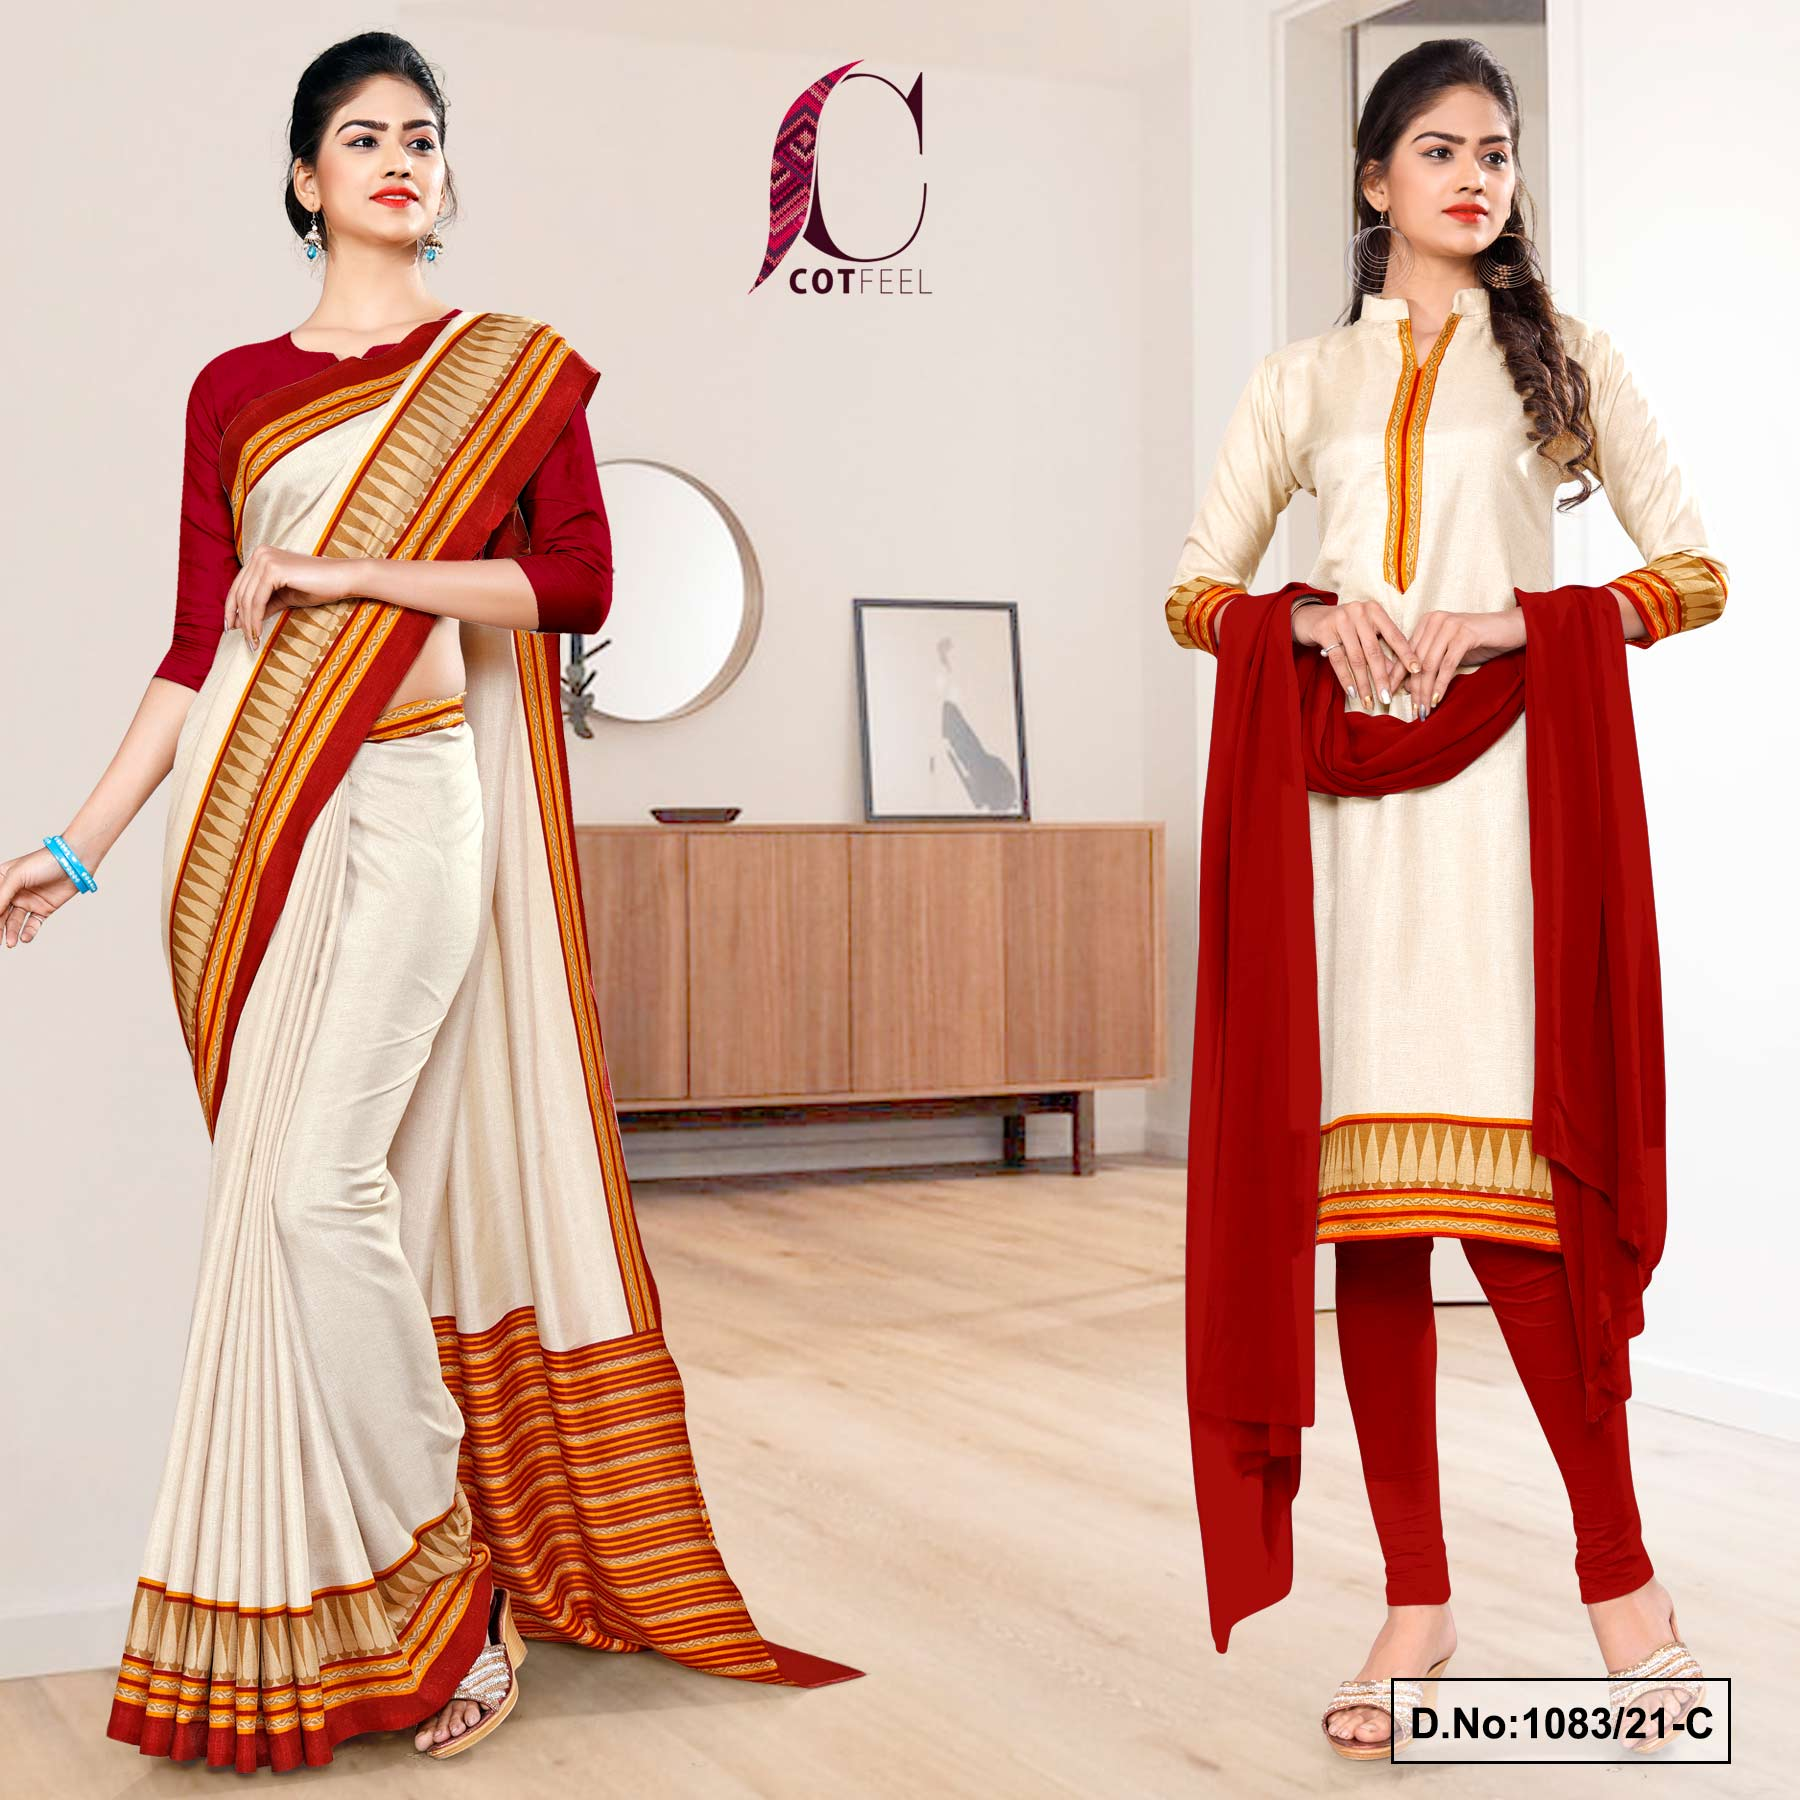 Cream Marron Plain Gala Border Polycotton Cotfeel Saree Salwar Combo for Student Uniform Sarees 1083